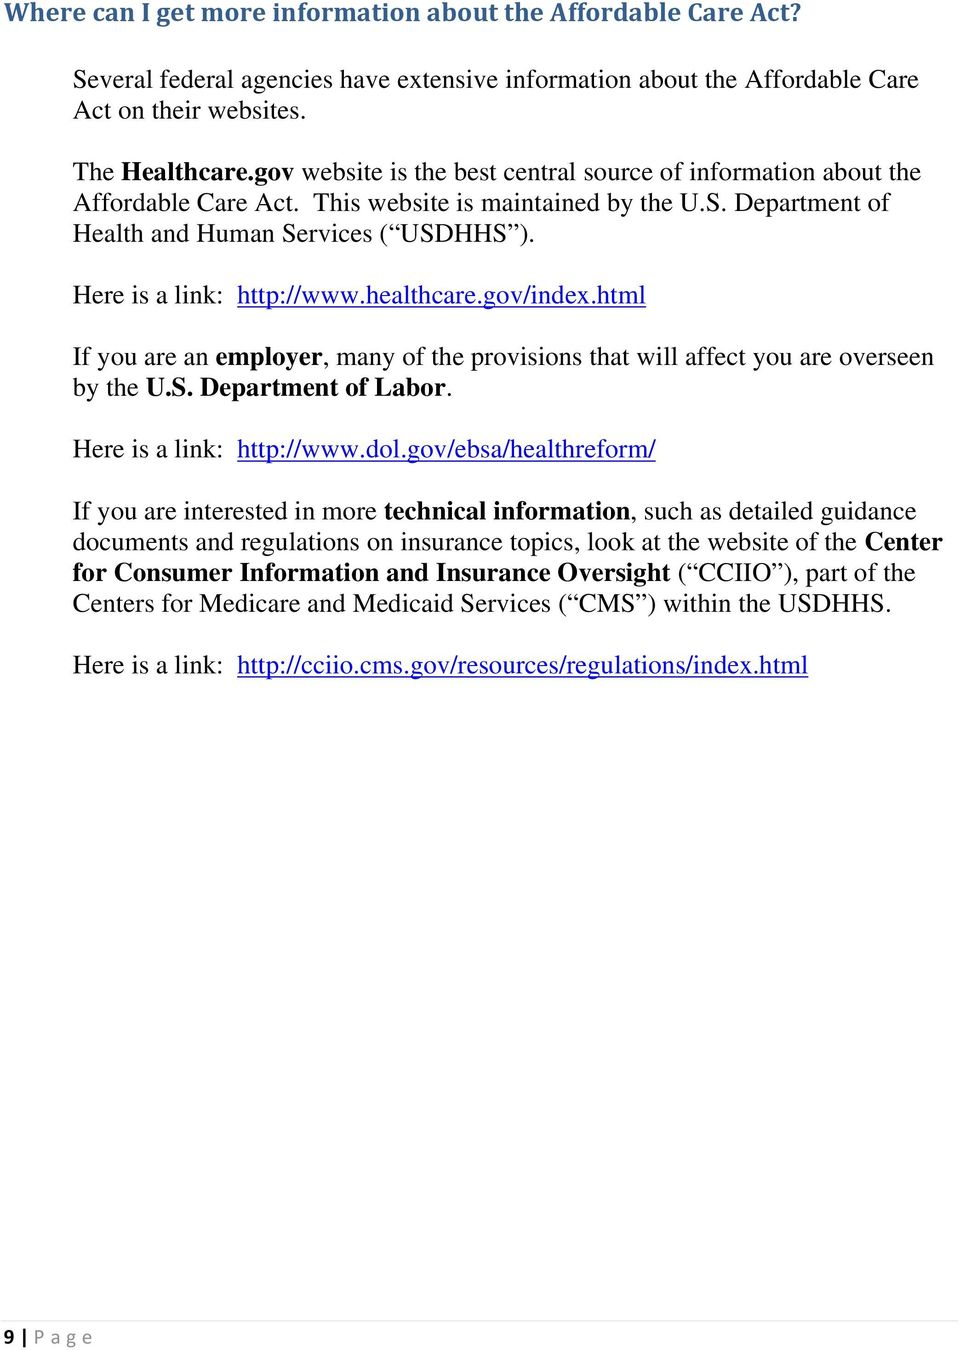 Here is a link: http://www.healthcare.gov/index.html If you are an employer, many of the provisions that will affect you are overseen by the U.S. Department of Labor. Here is a link: http://www.dol.